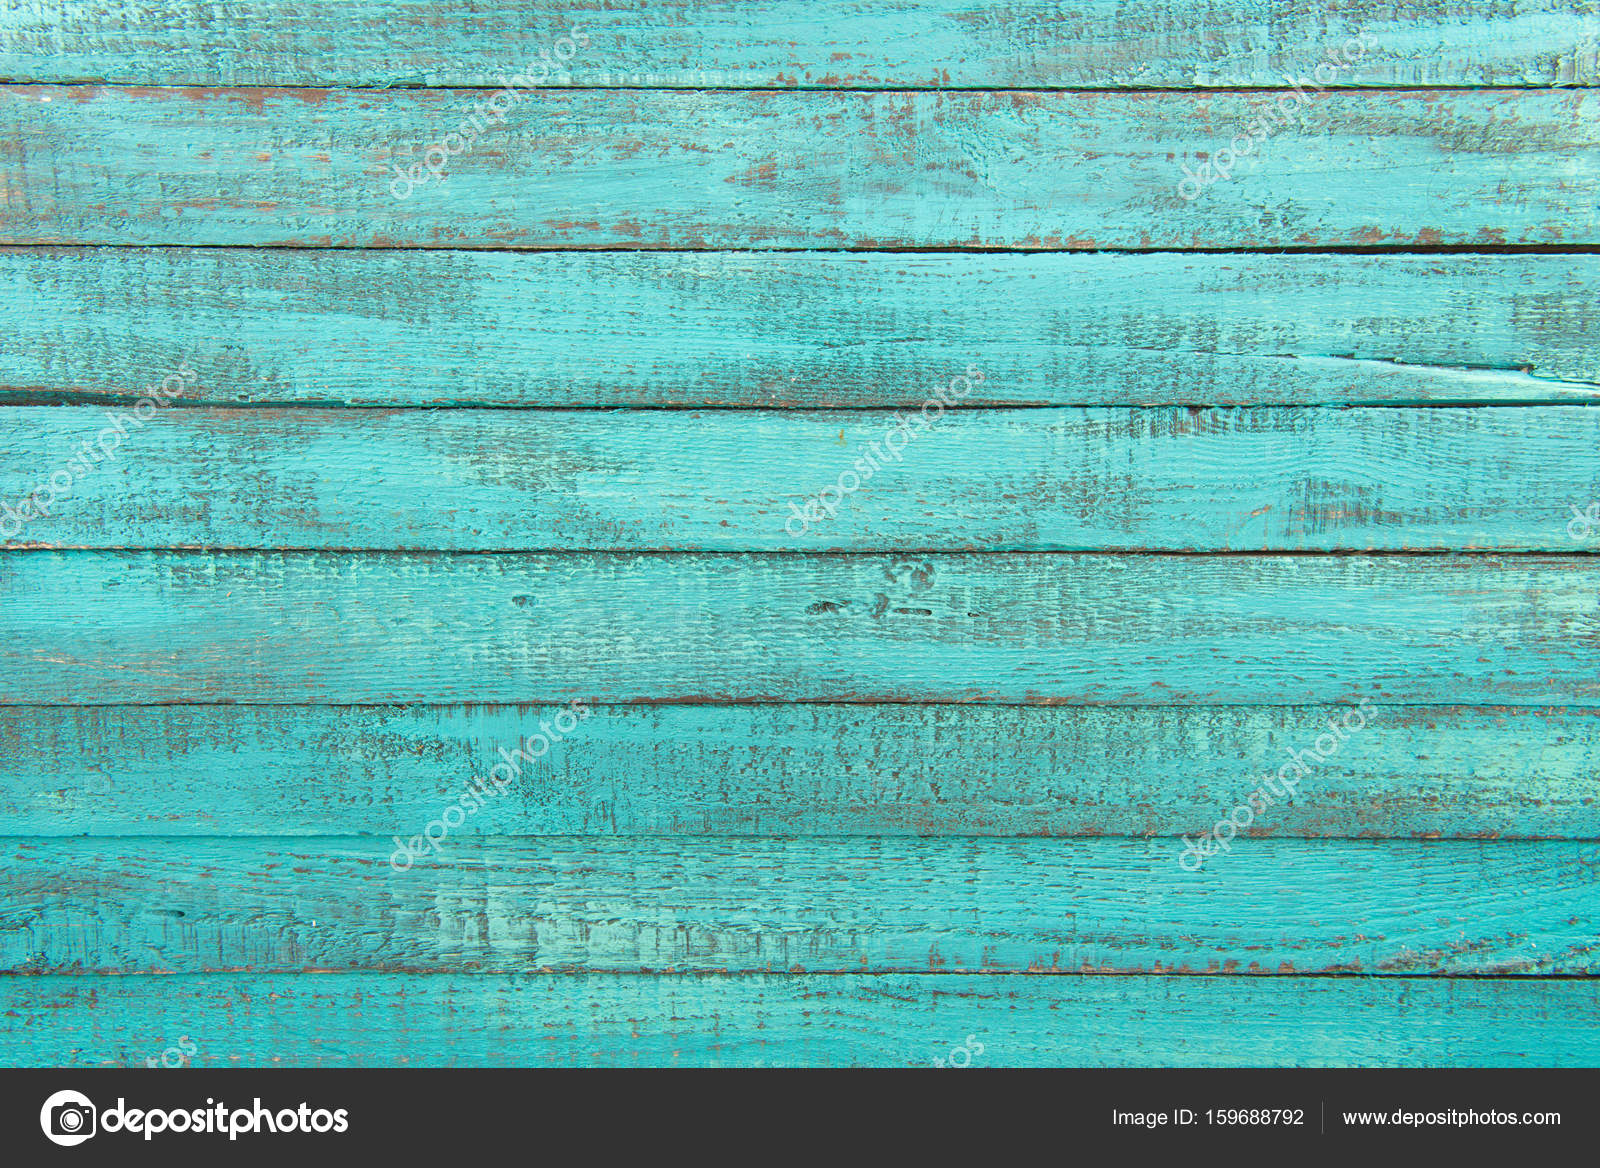 Top View Of Decorative Rustic Turquoise Wooden Background With Horizontal Planks Photo By AntonMatyukha